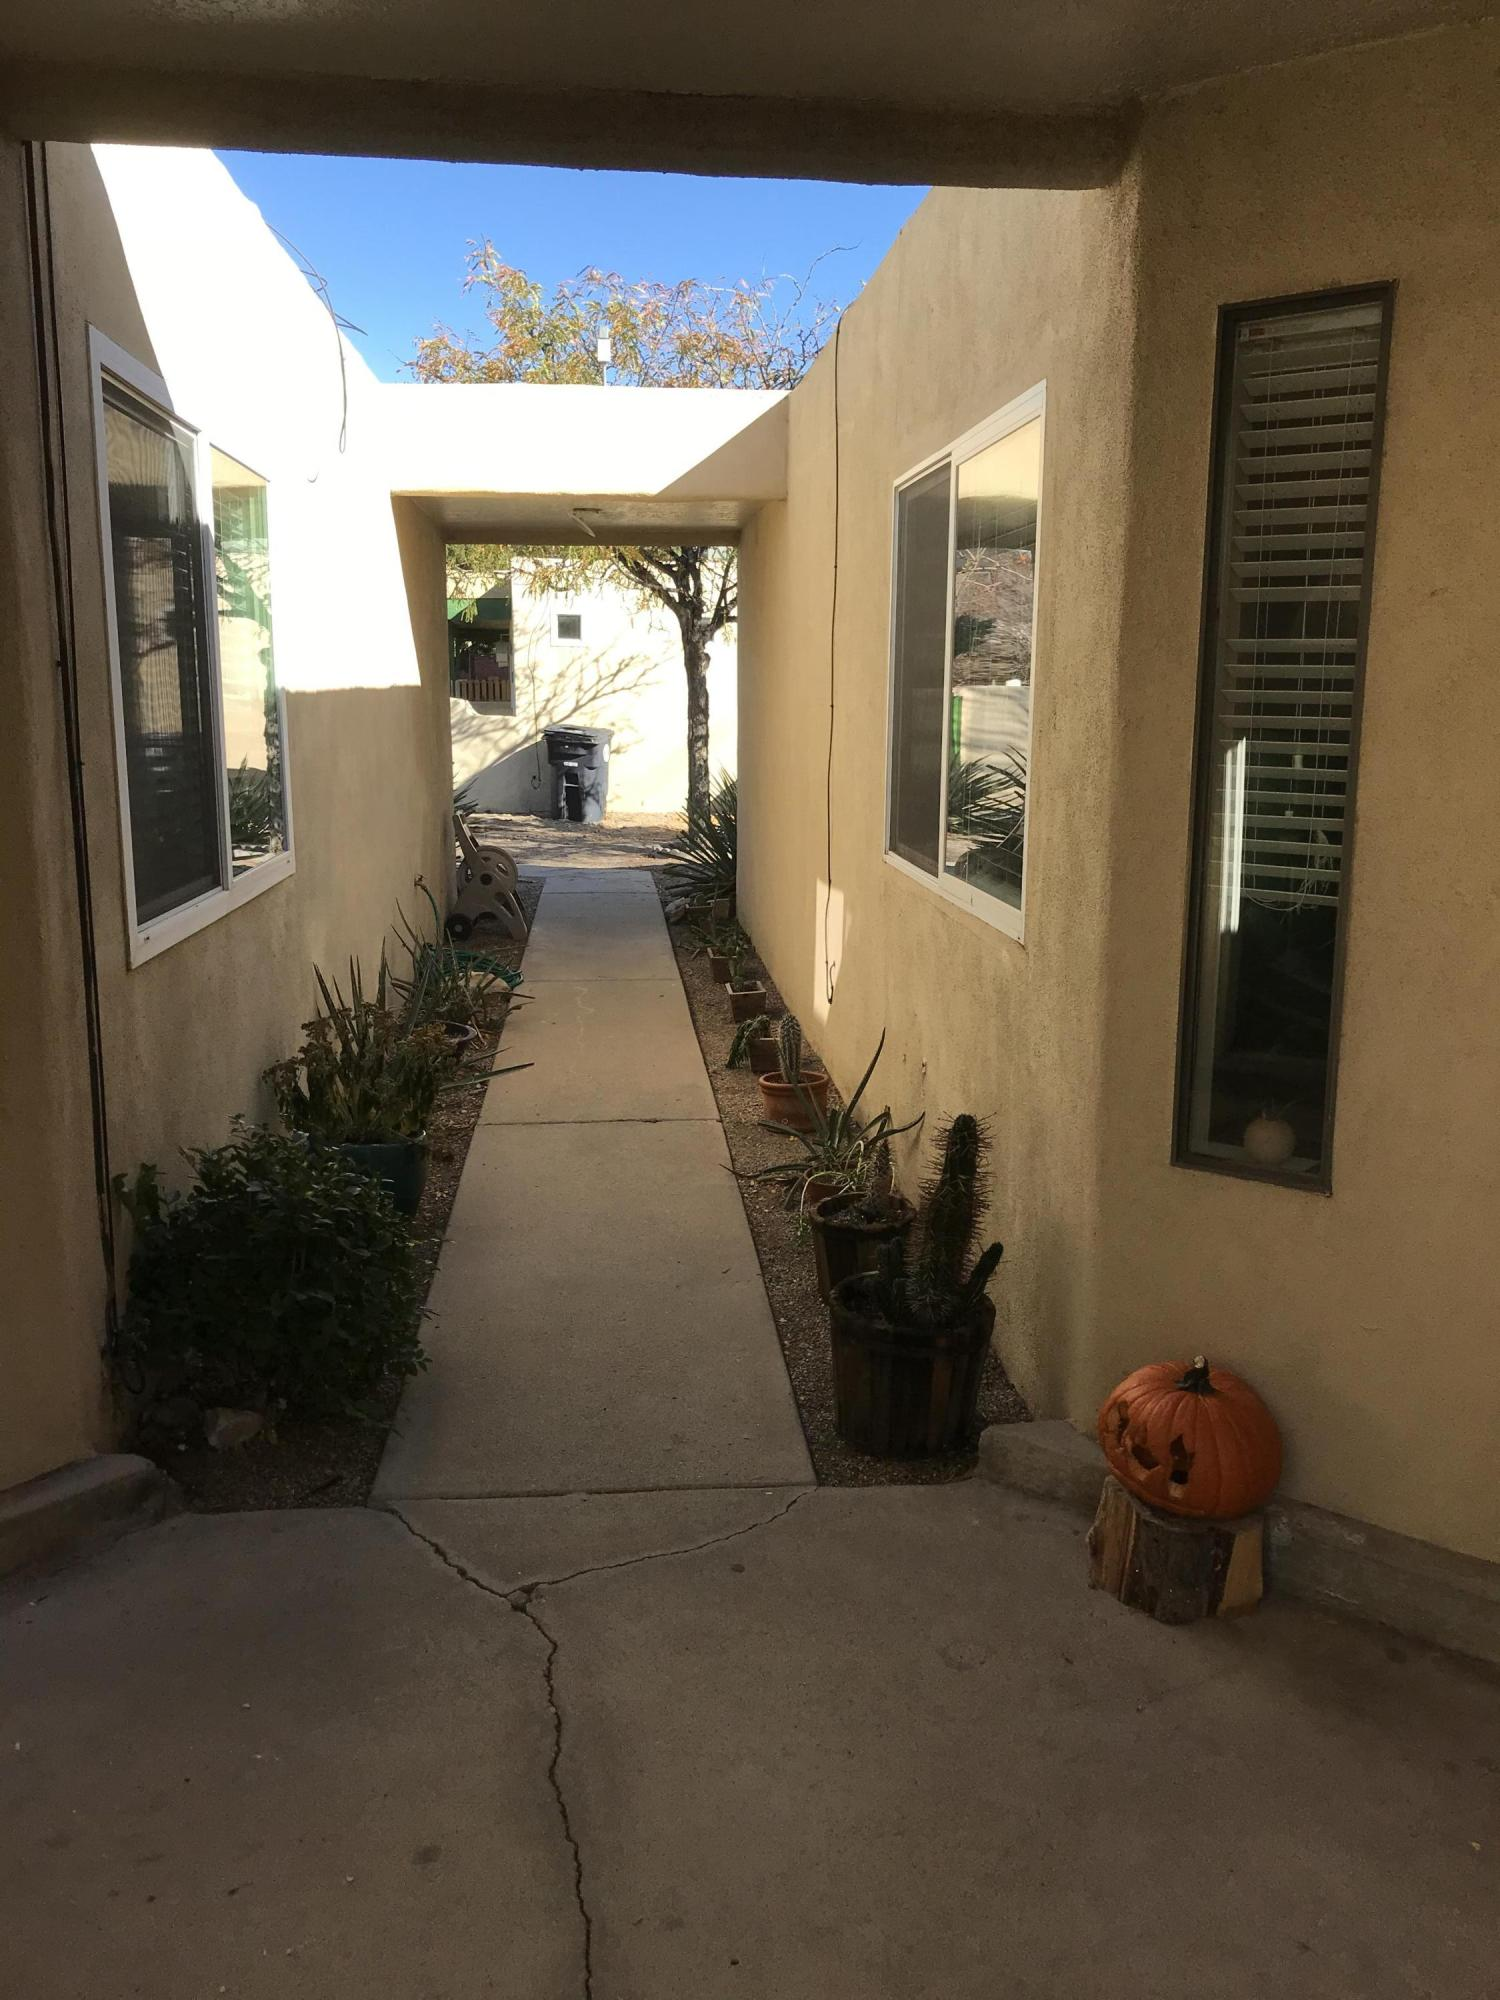 Own for less than you can rent!  Smart, detailed Two Bedroom condo with color and class.  Kitchen has Butcher Box and Stone counter tops, pantry and Skylight.  All appliances stay!  Woodburning fireplace.  Private Back patio with sunshade.  New Roof. Insulated non-joining wall to neighbor.  Don't miss out on an opportunity to own this adorable condo.